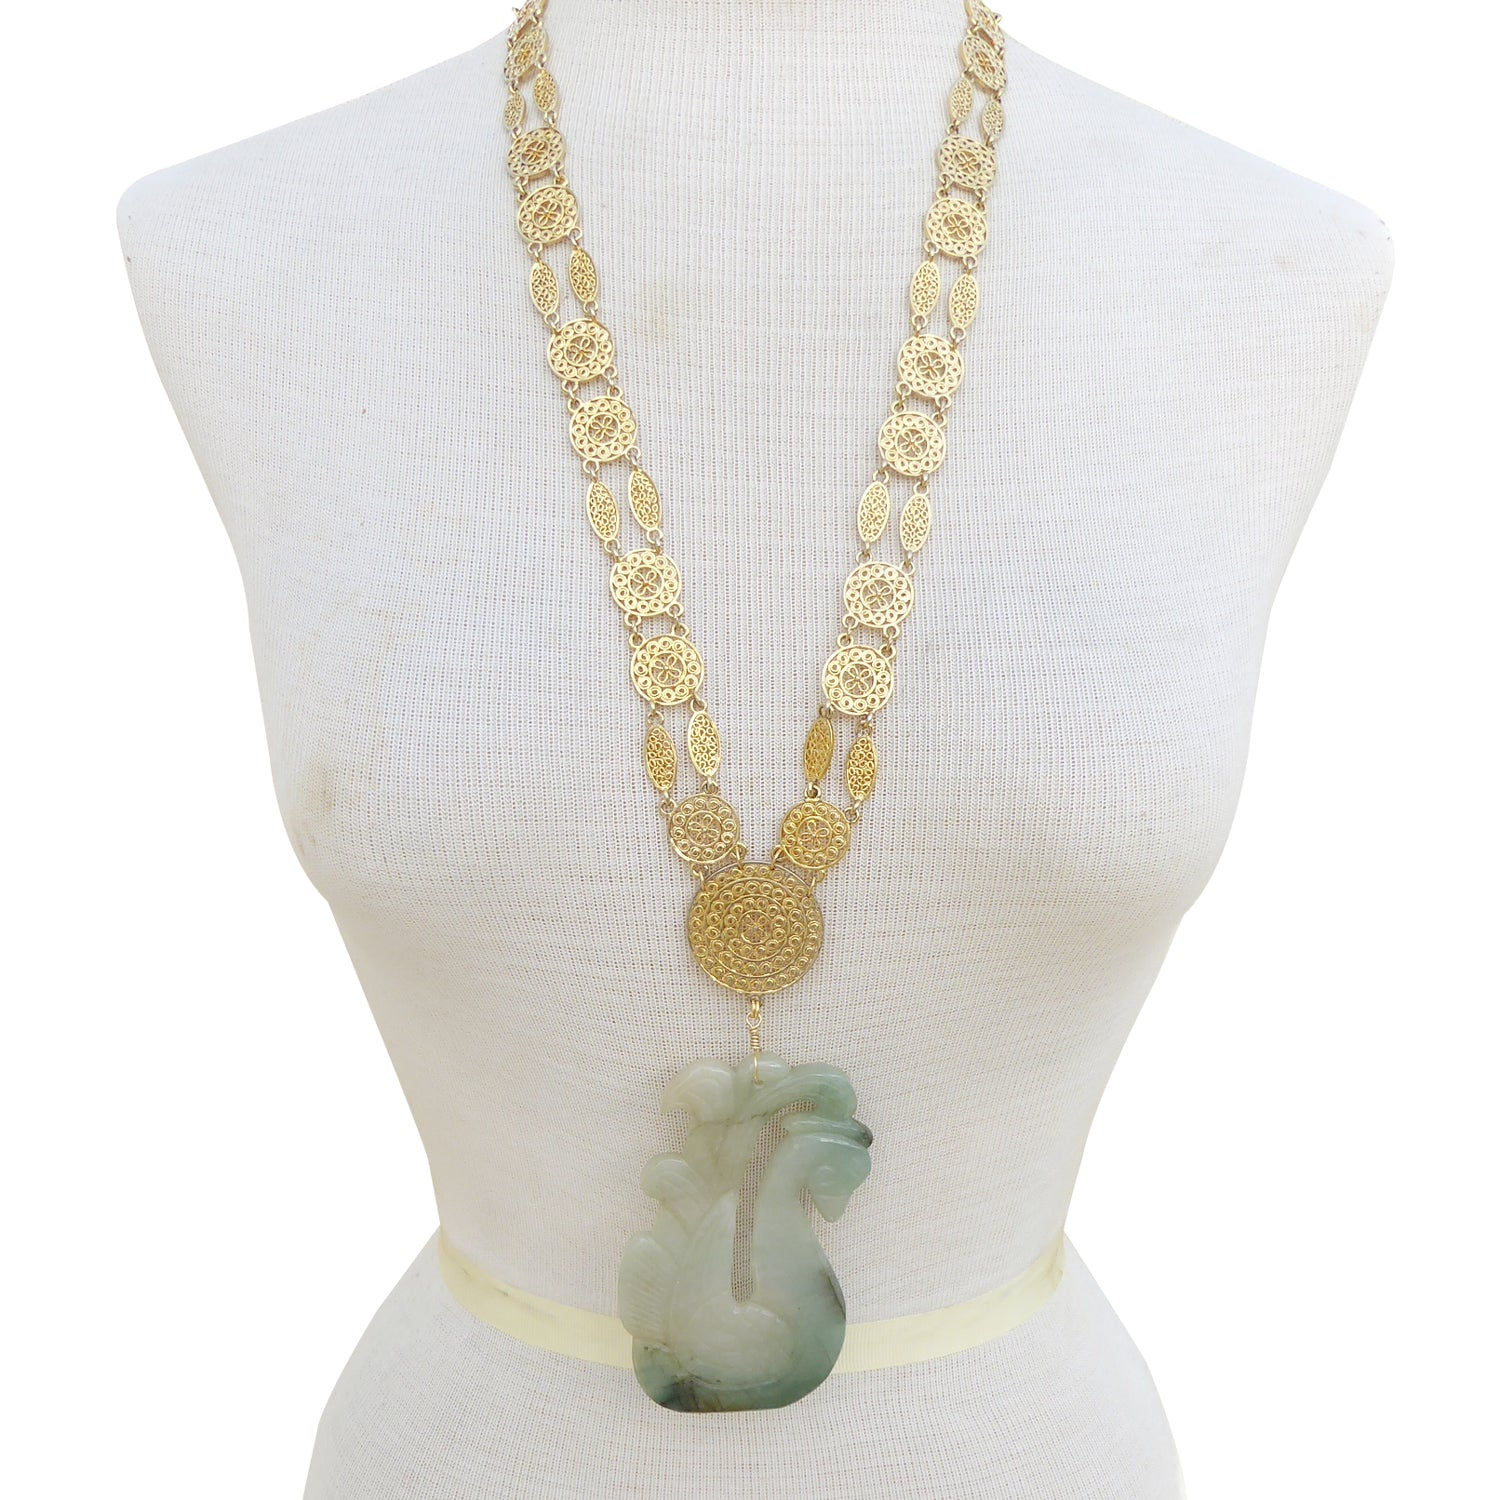 Jade swan necklace